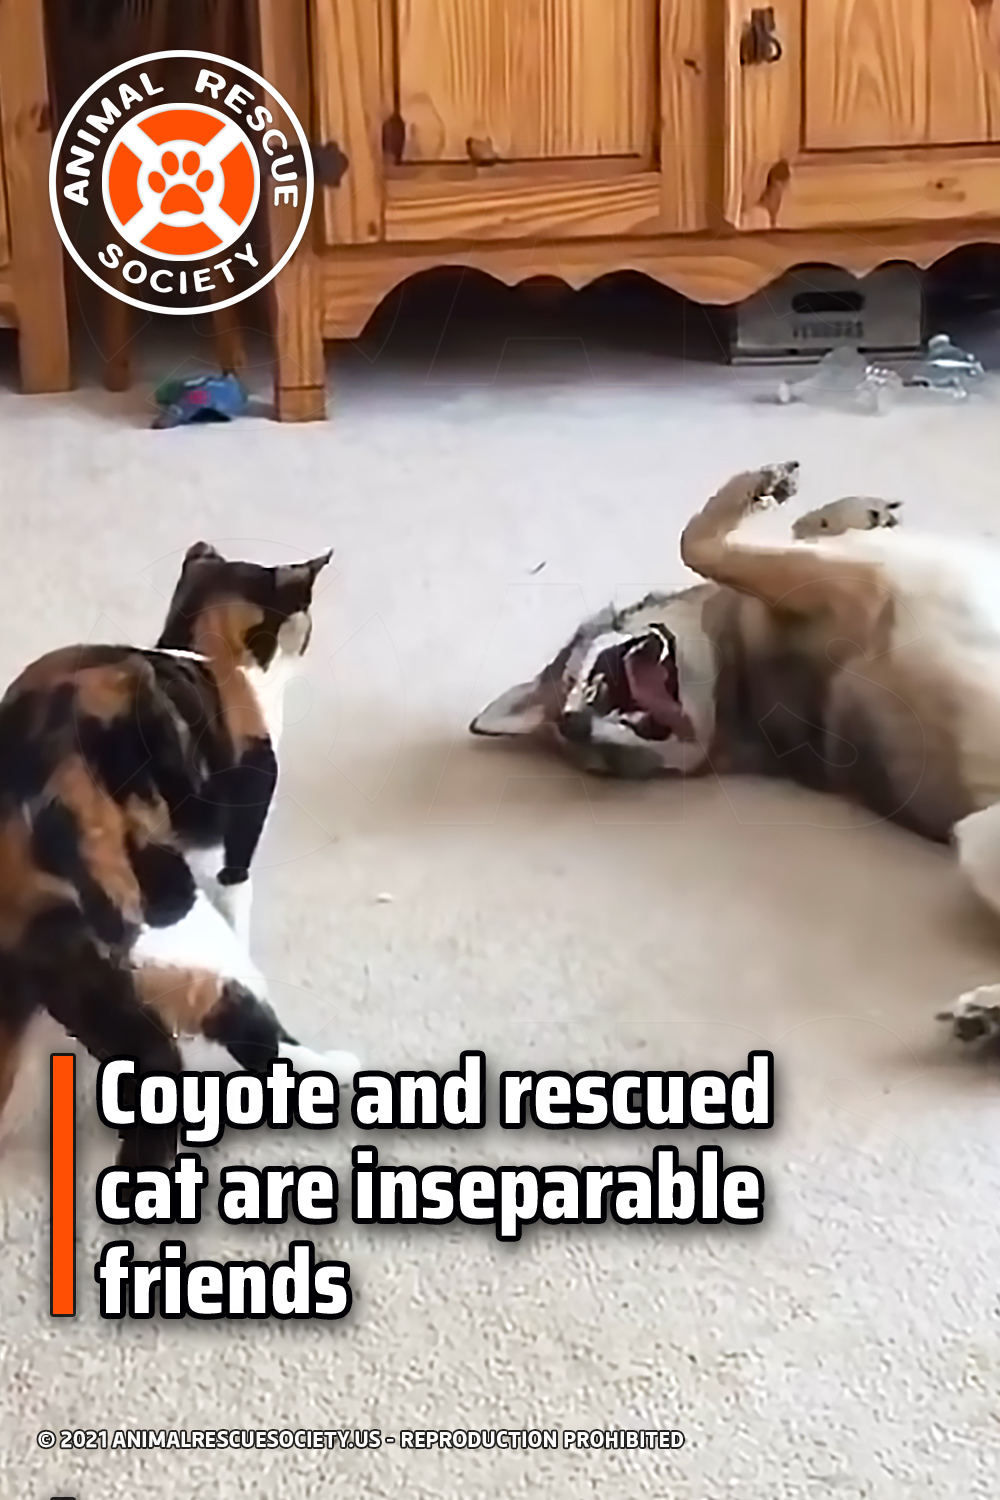 Coyote and rescued cat are inseparable friends